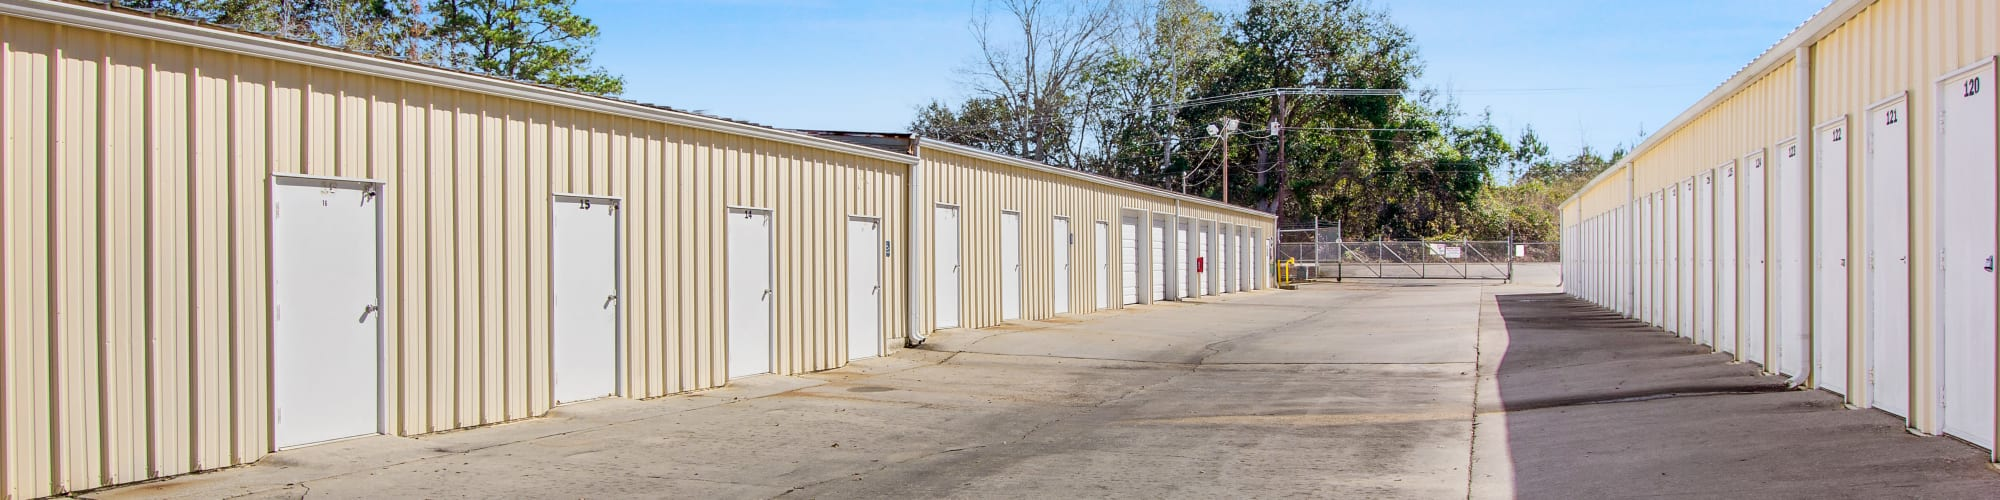 Map & Directions to Global Self Storage in Summerville, South Carolina